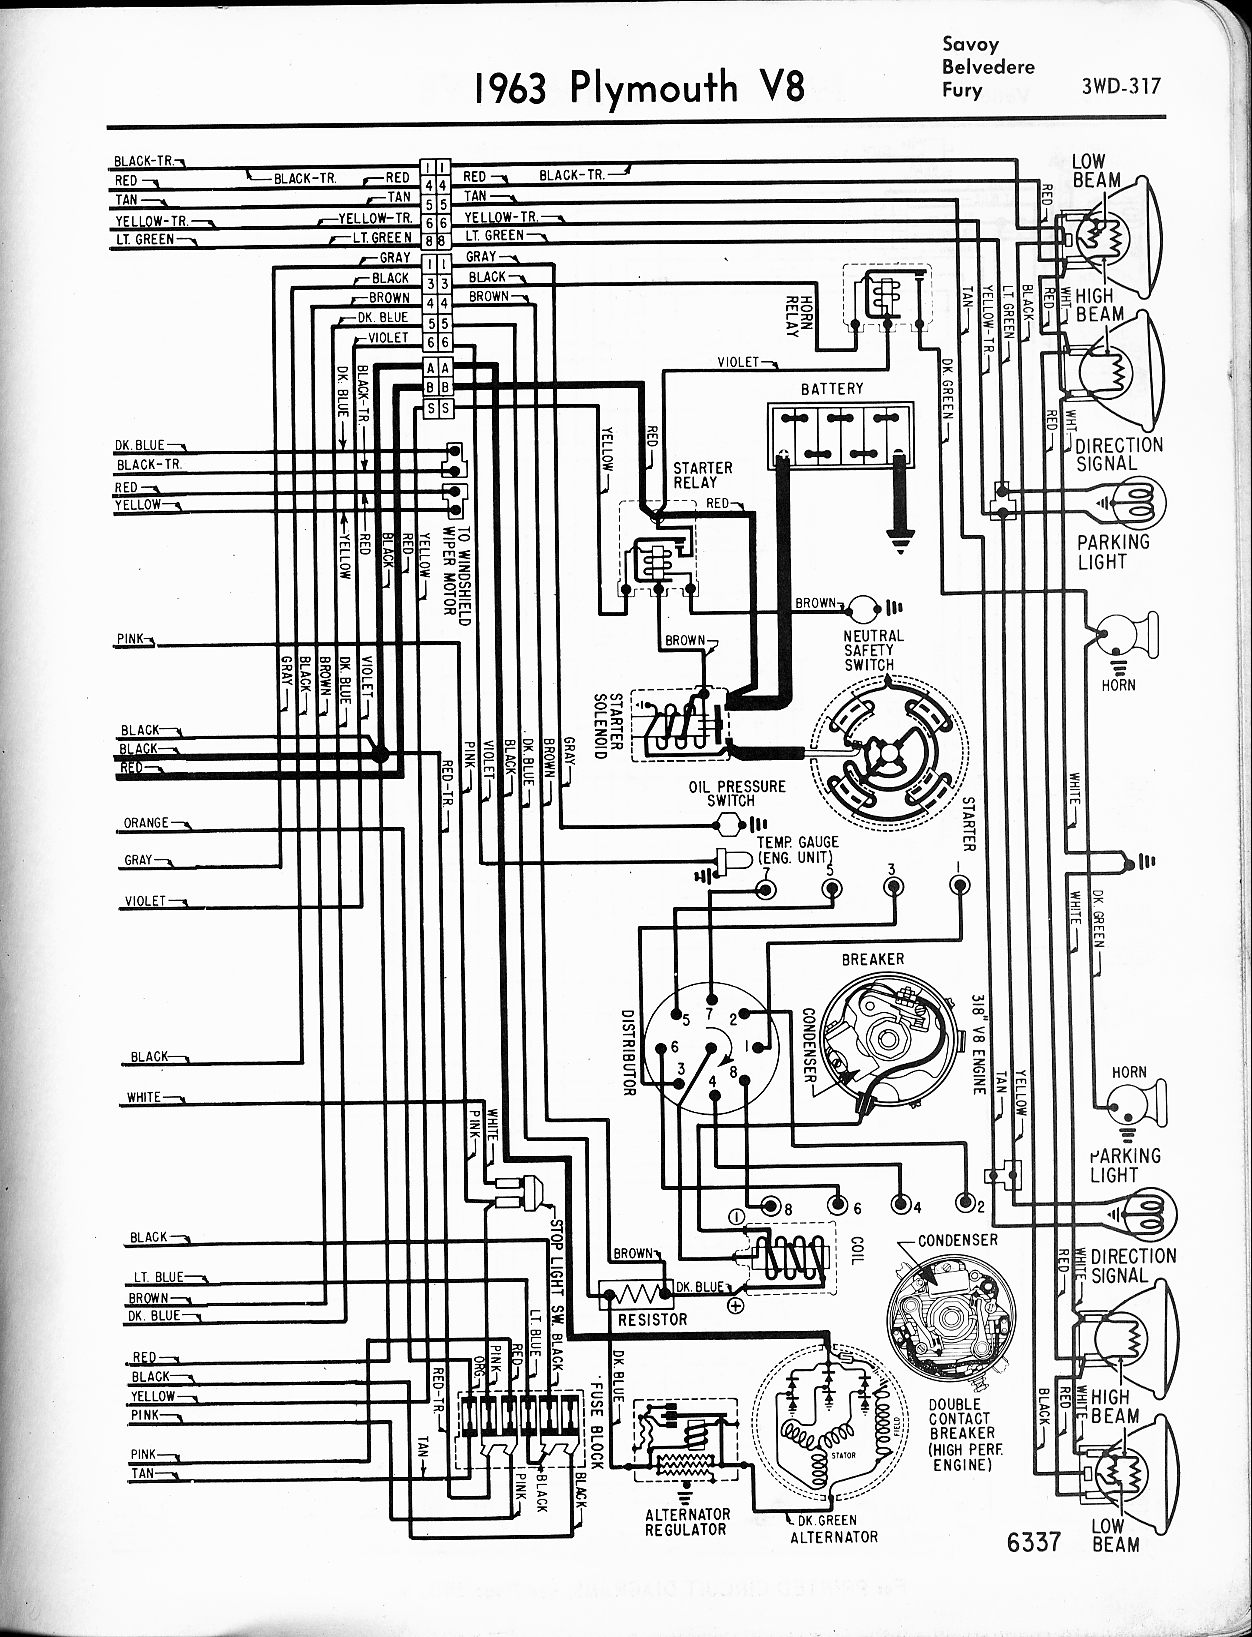 1968 fury wiring diagram wiring schematic diagram 95 1967 plymouth fury engine diagram